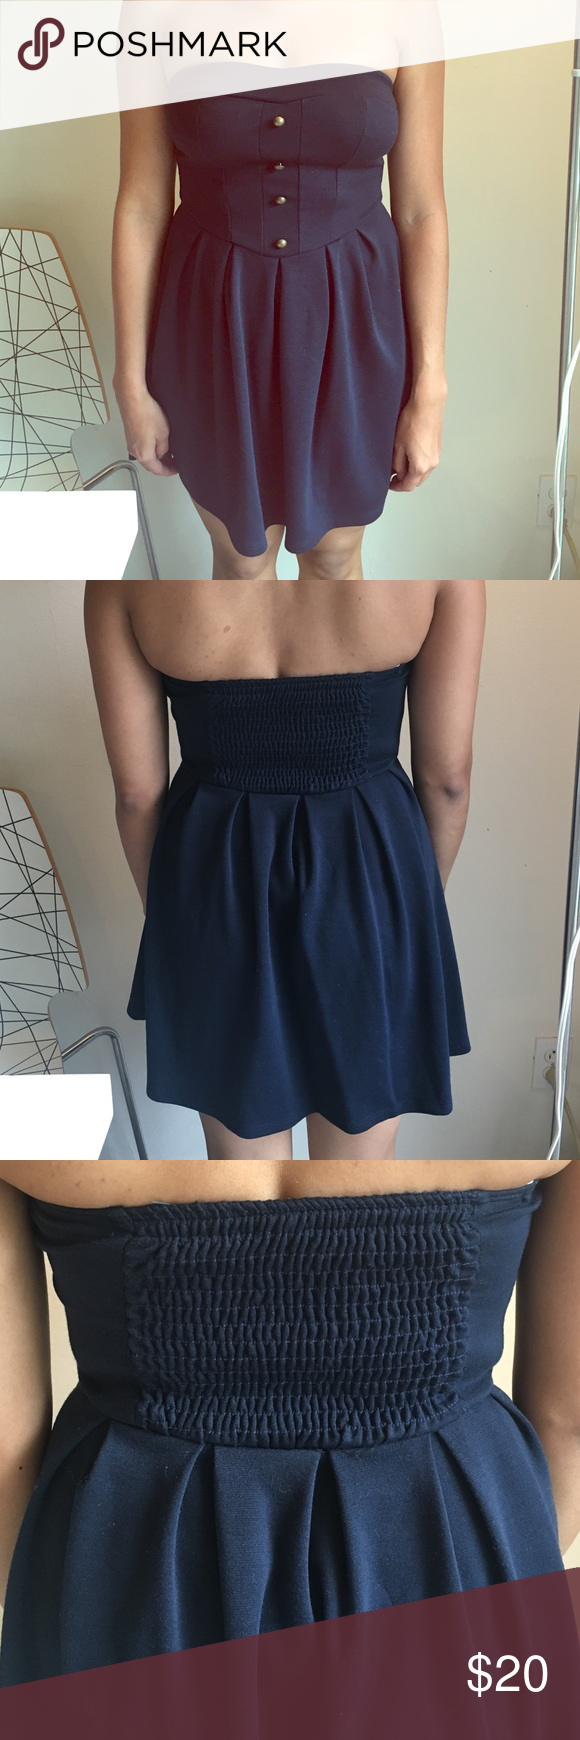 Strapless cotton urban outfitters dress Pins and Needles-  Navy strapless urban outfitters dress XS Perfect Condition Pins & Needles Dresses Mini